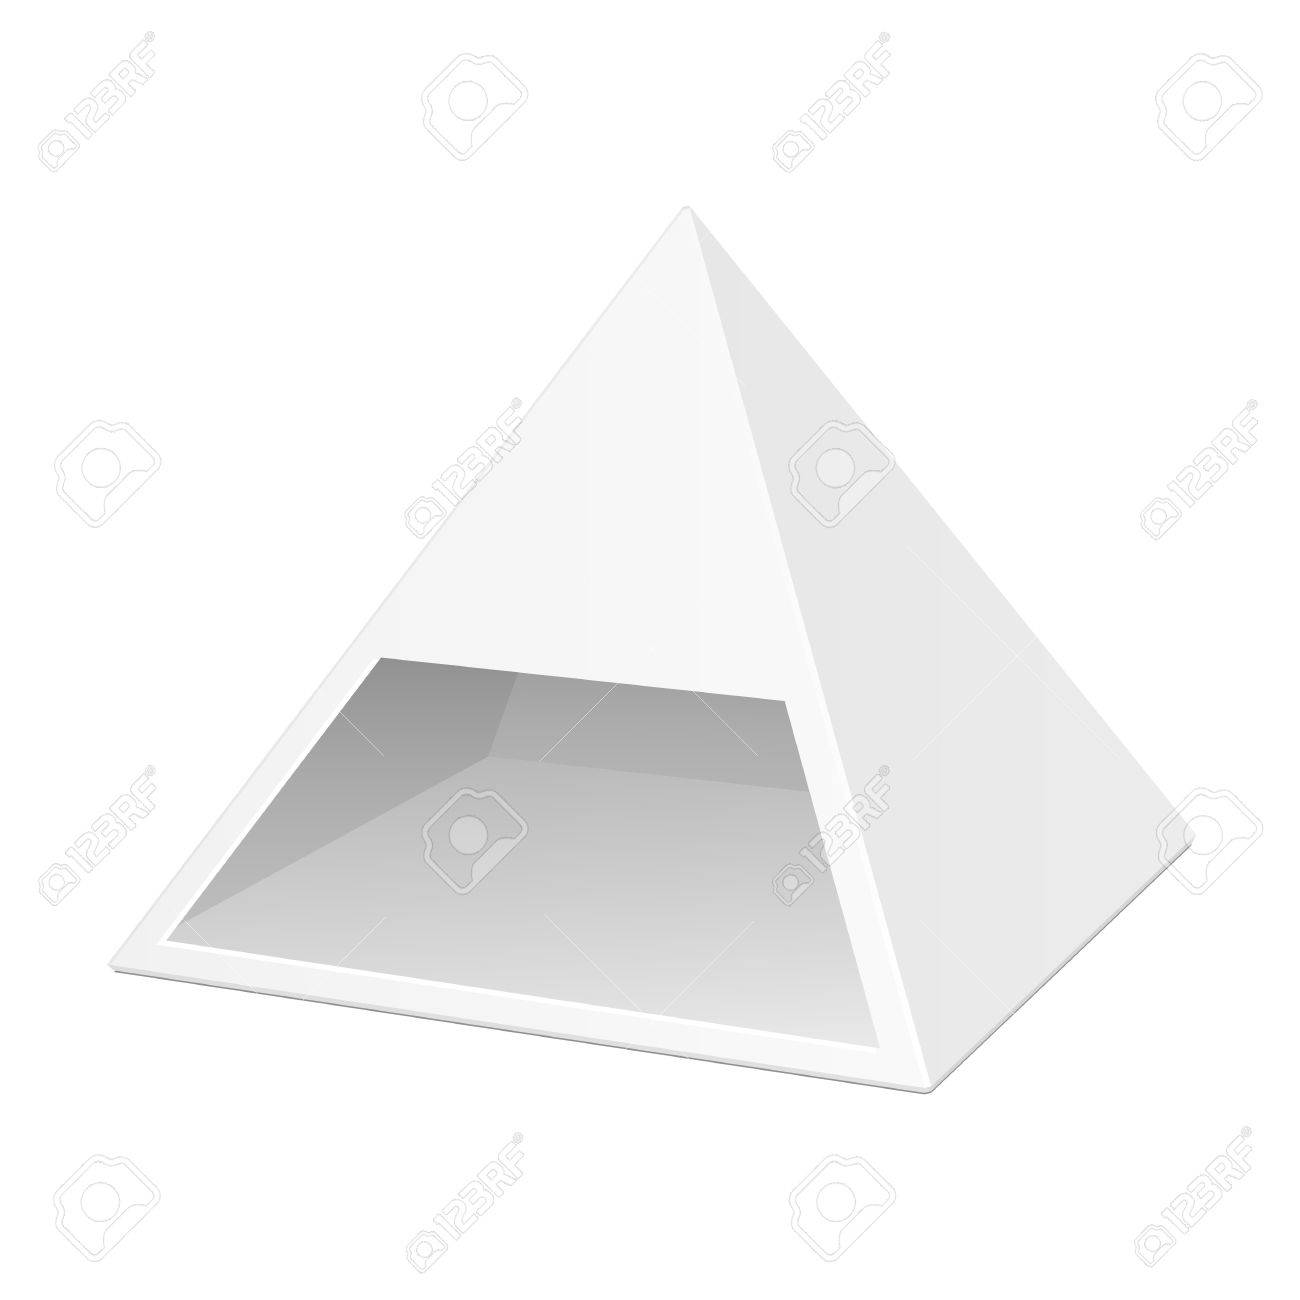 white cardboard pyramid triangle box packaging for food gift